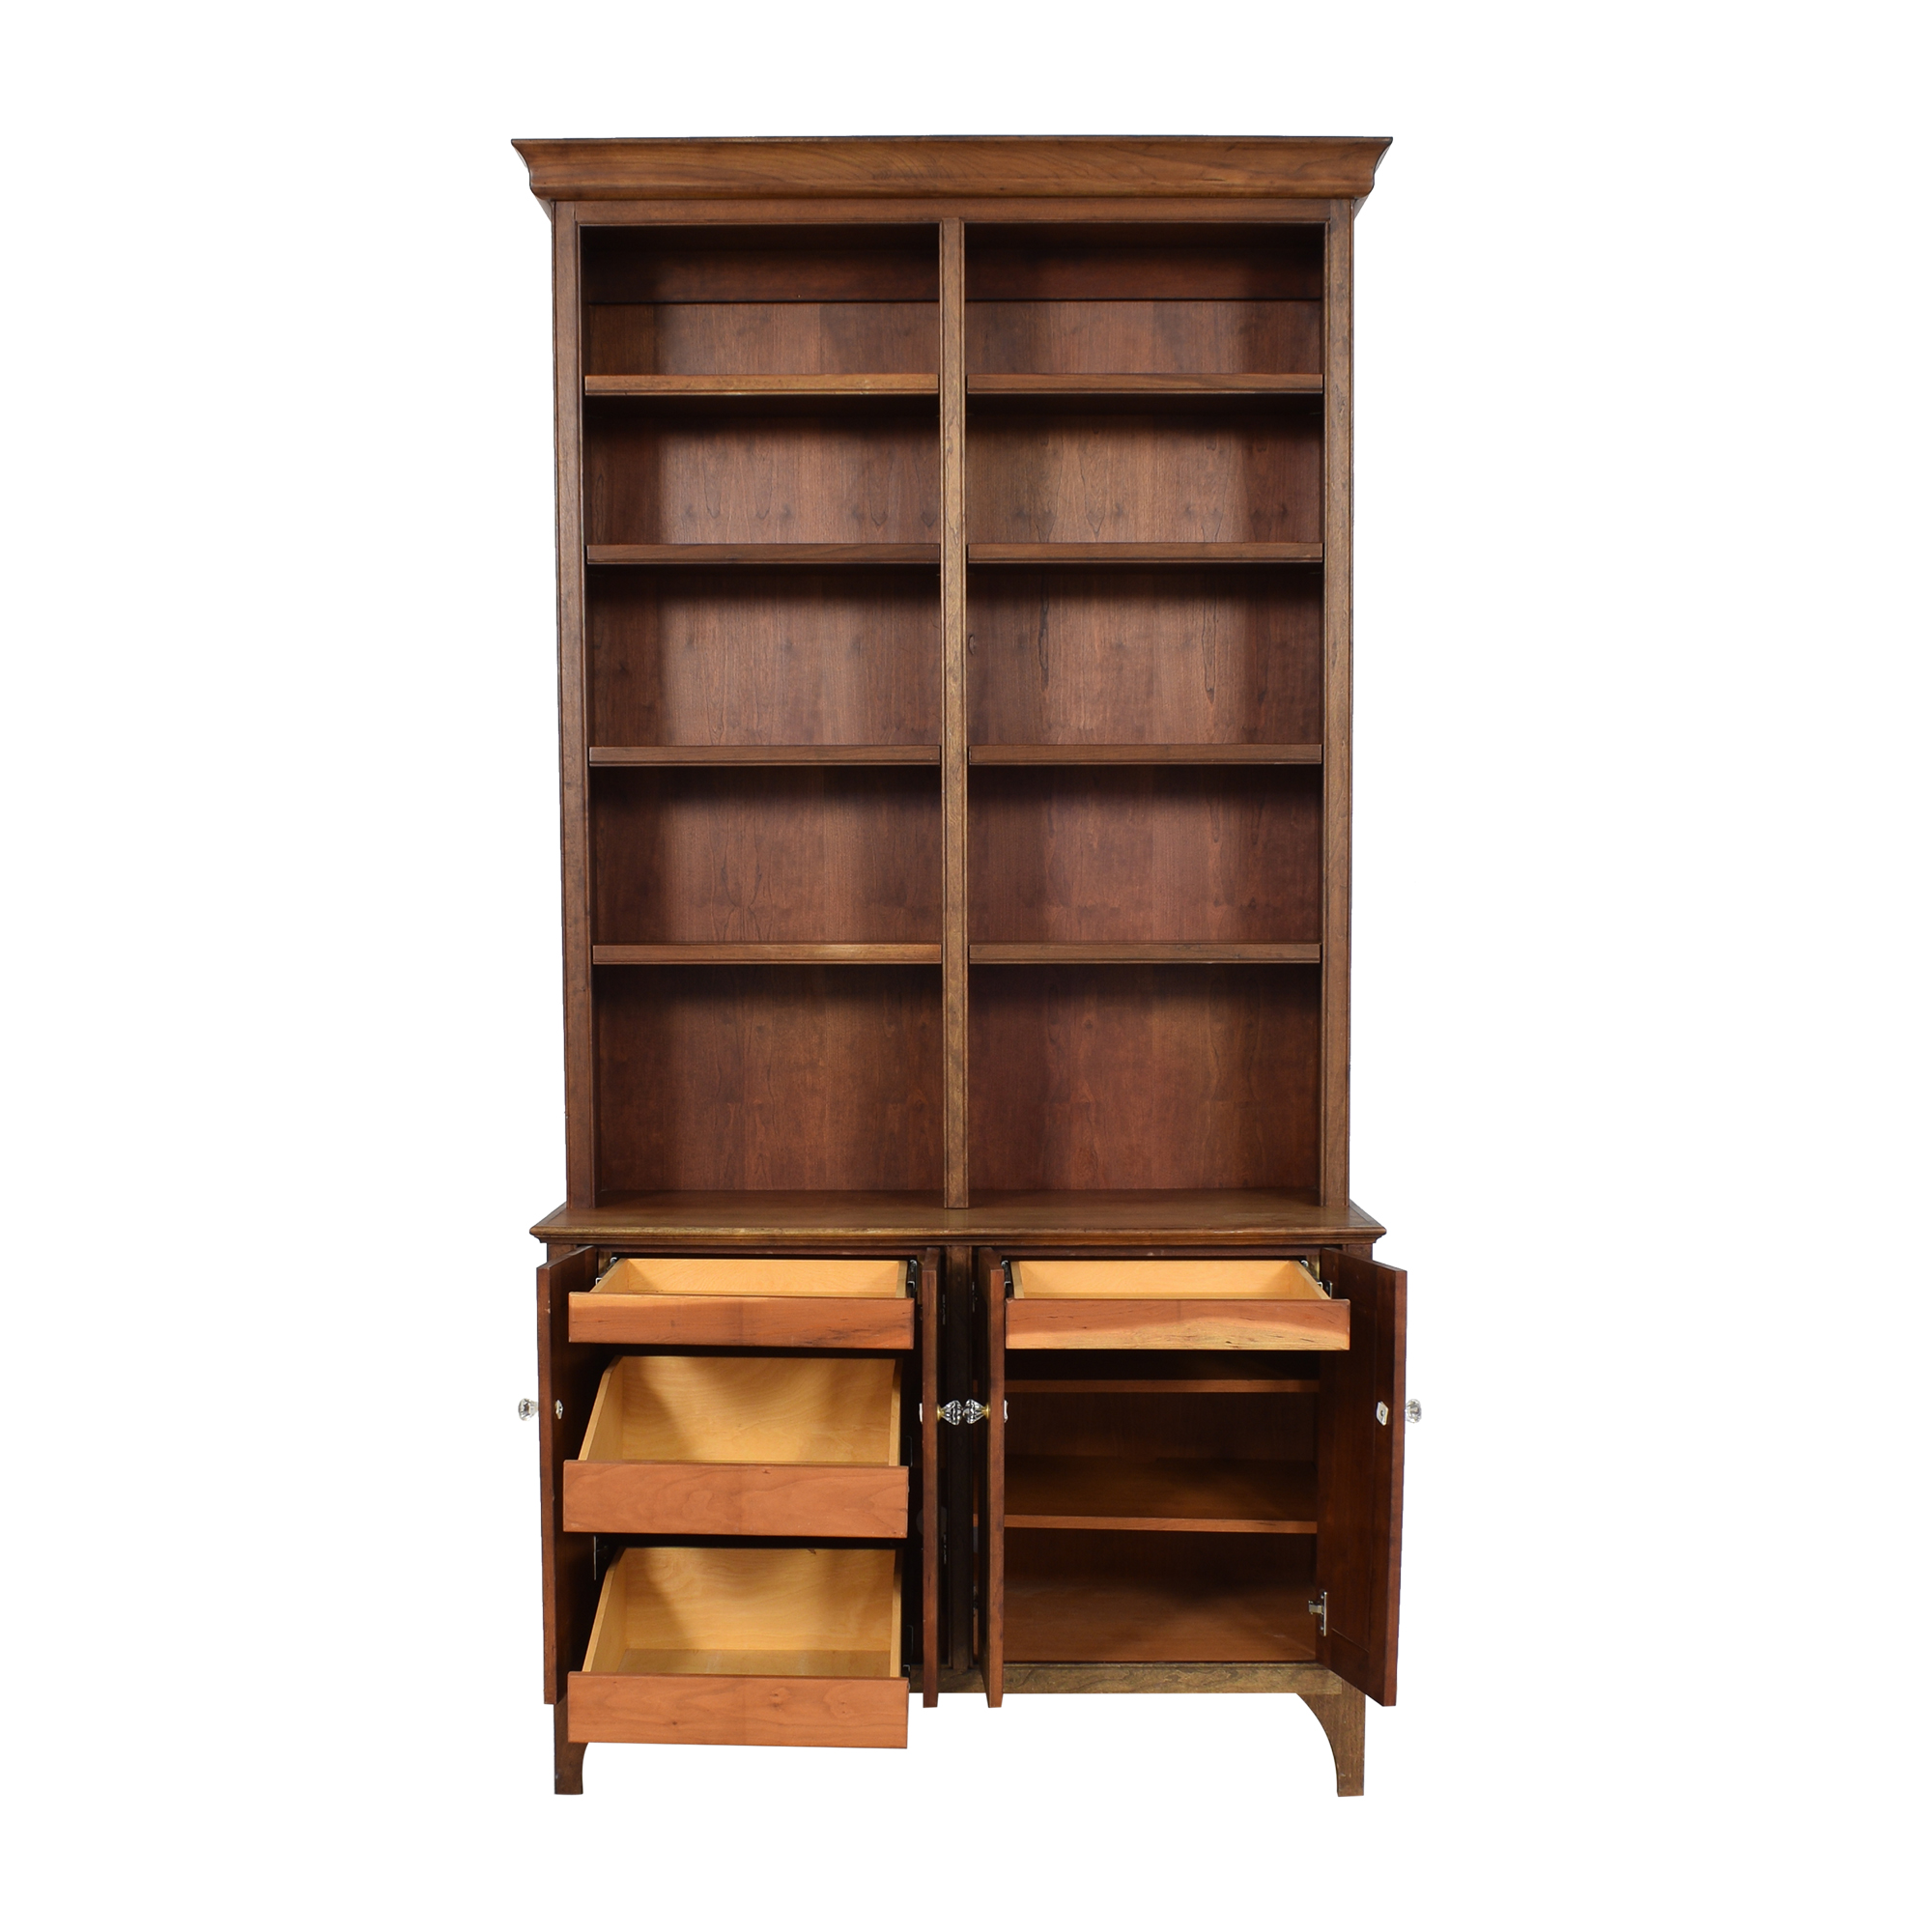 shop Vintage Cabinet with Bookshelf  Bookcases & Shelving